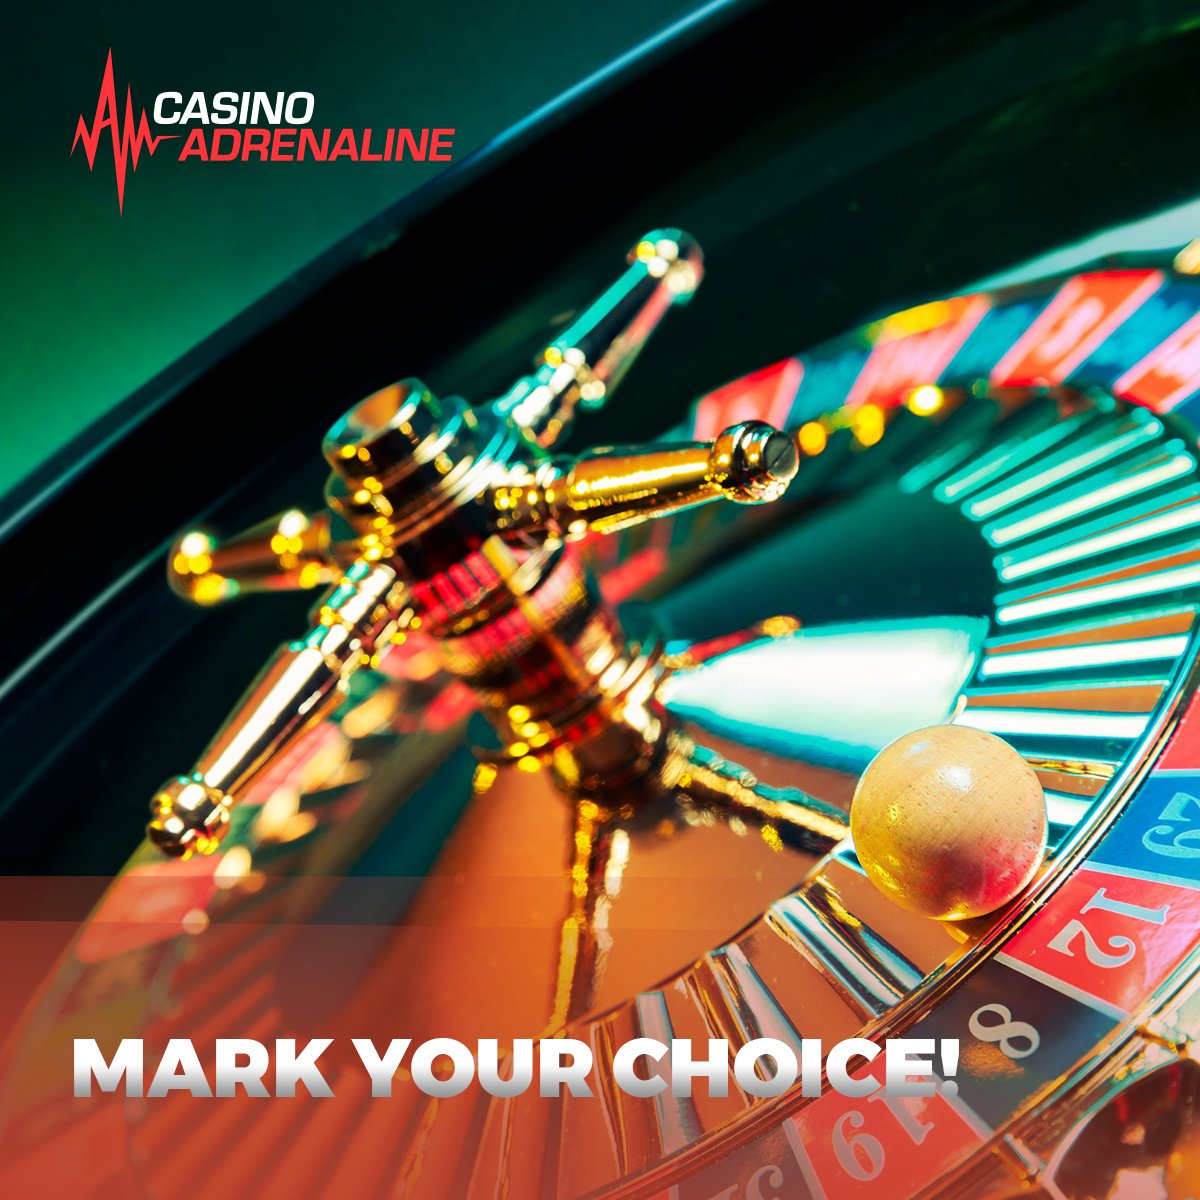 test Twitter Media - Are you a fan of roulette? Black or red? Mark your choice! https://t.co/DqeCV4gELe